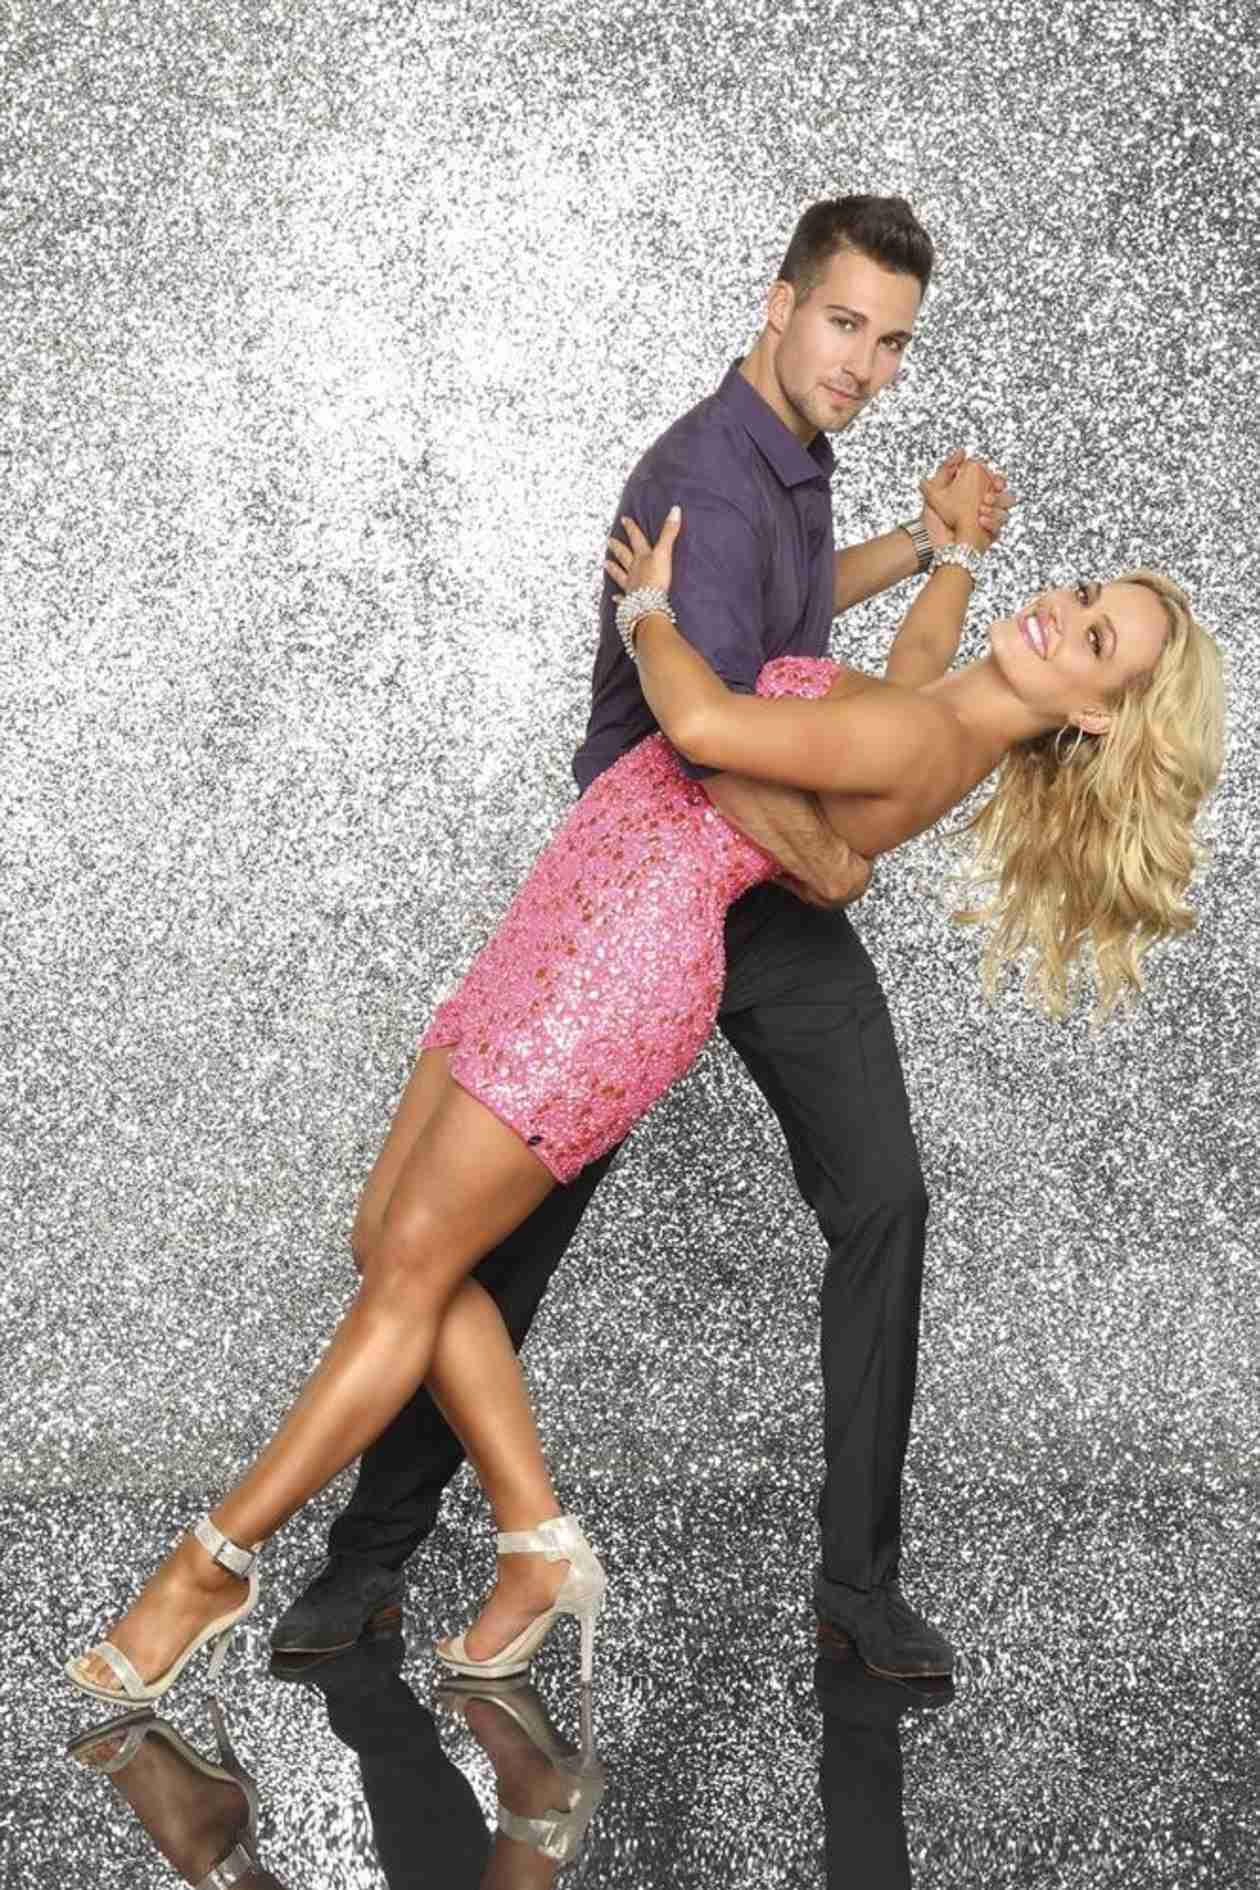 Dancing With the Stars 2014: James Maslow and Peta Murgatroyd's Week 6 Quickstep (VIDEO)